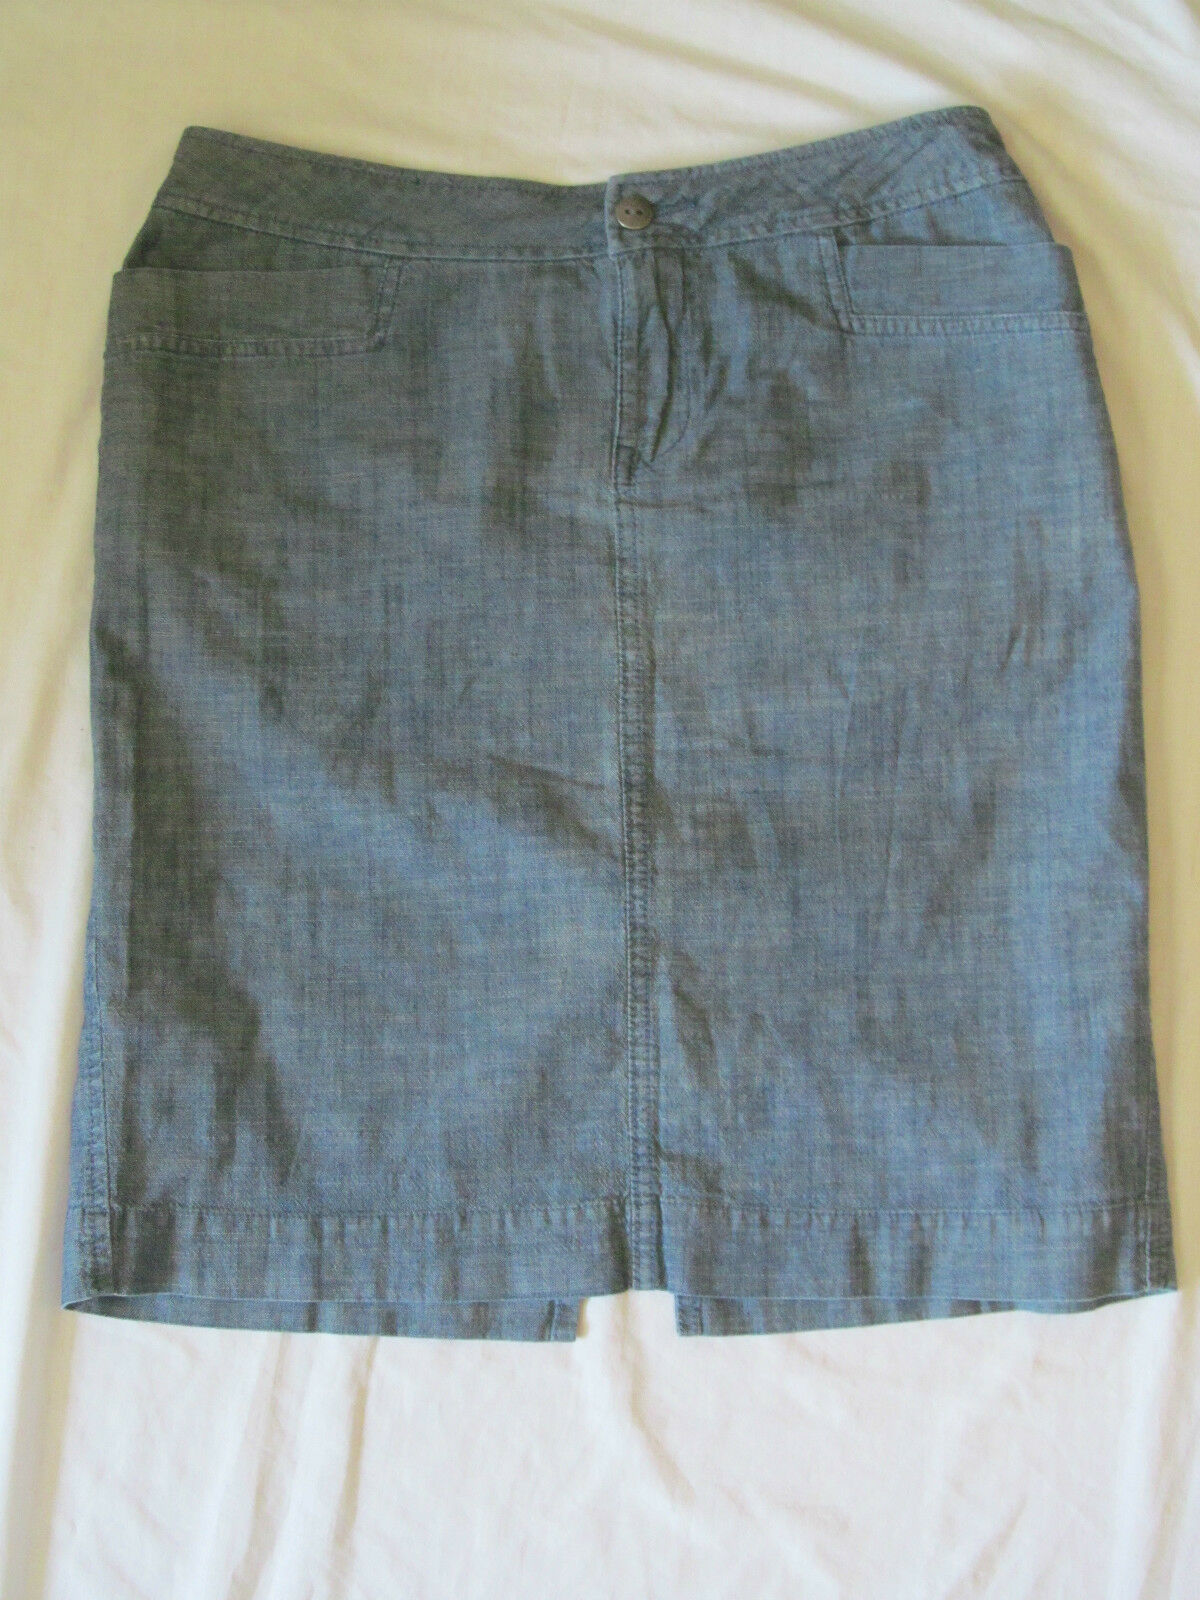 WOMEN'S COLDWATER CREEK A-LINE STRETCH blueE JEAN KNEE LENGTH SKIRT 10P 10 PETITE